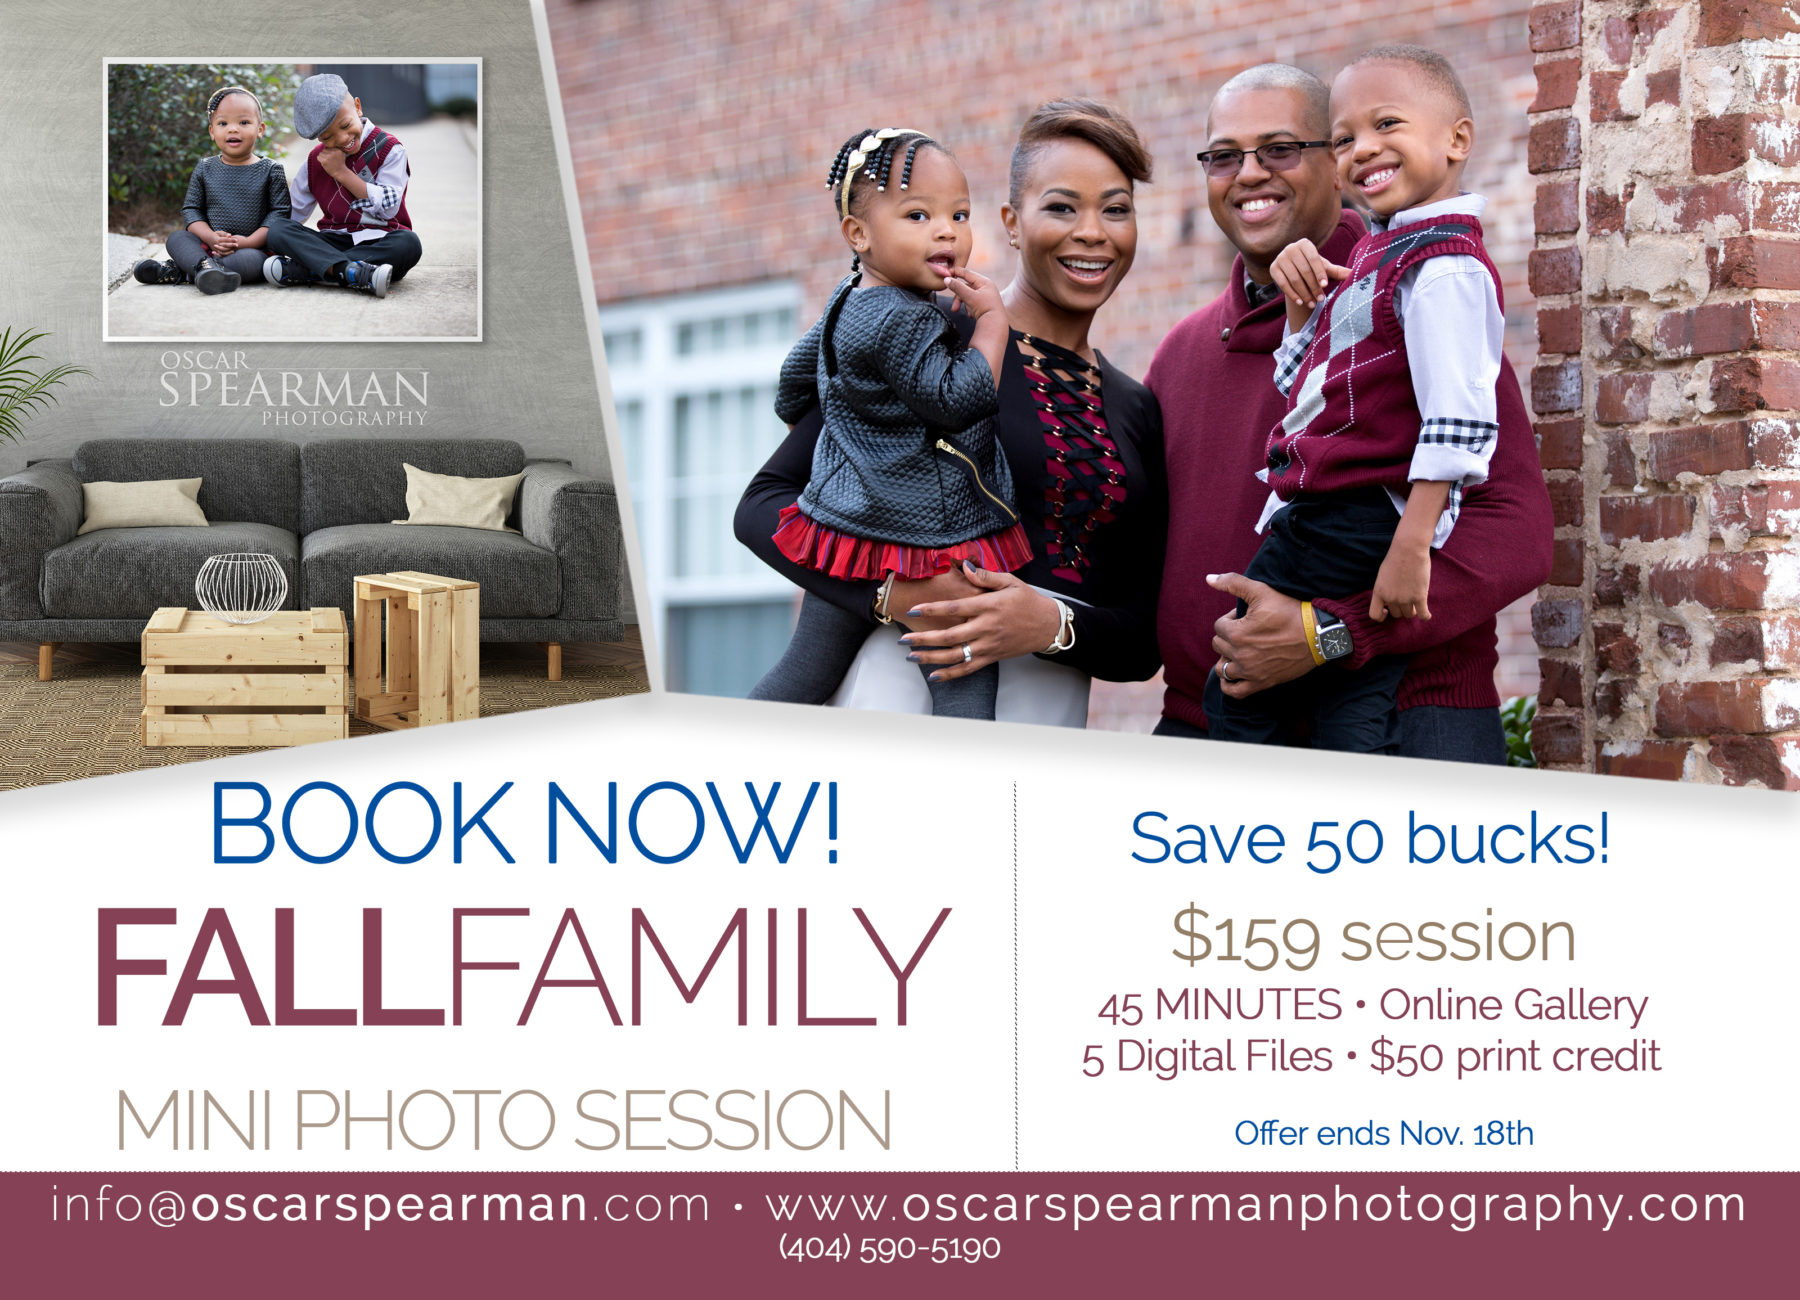 https://oscarspearmanphotography.com/wp-content/uploads/2018/10/2018-Fall-Family-Mini-Session1-1800x1300.jpg